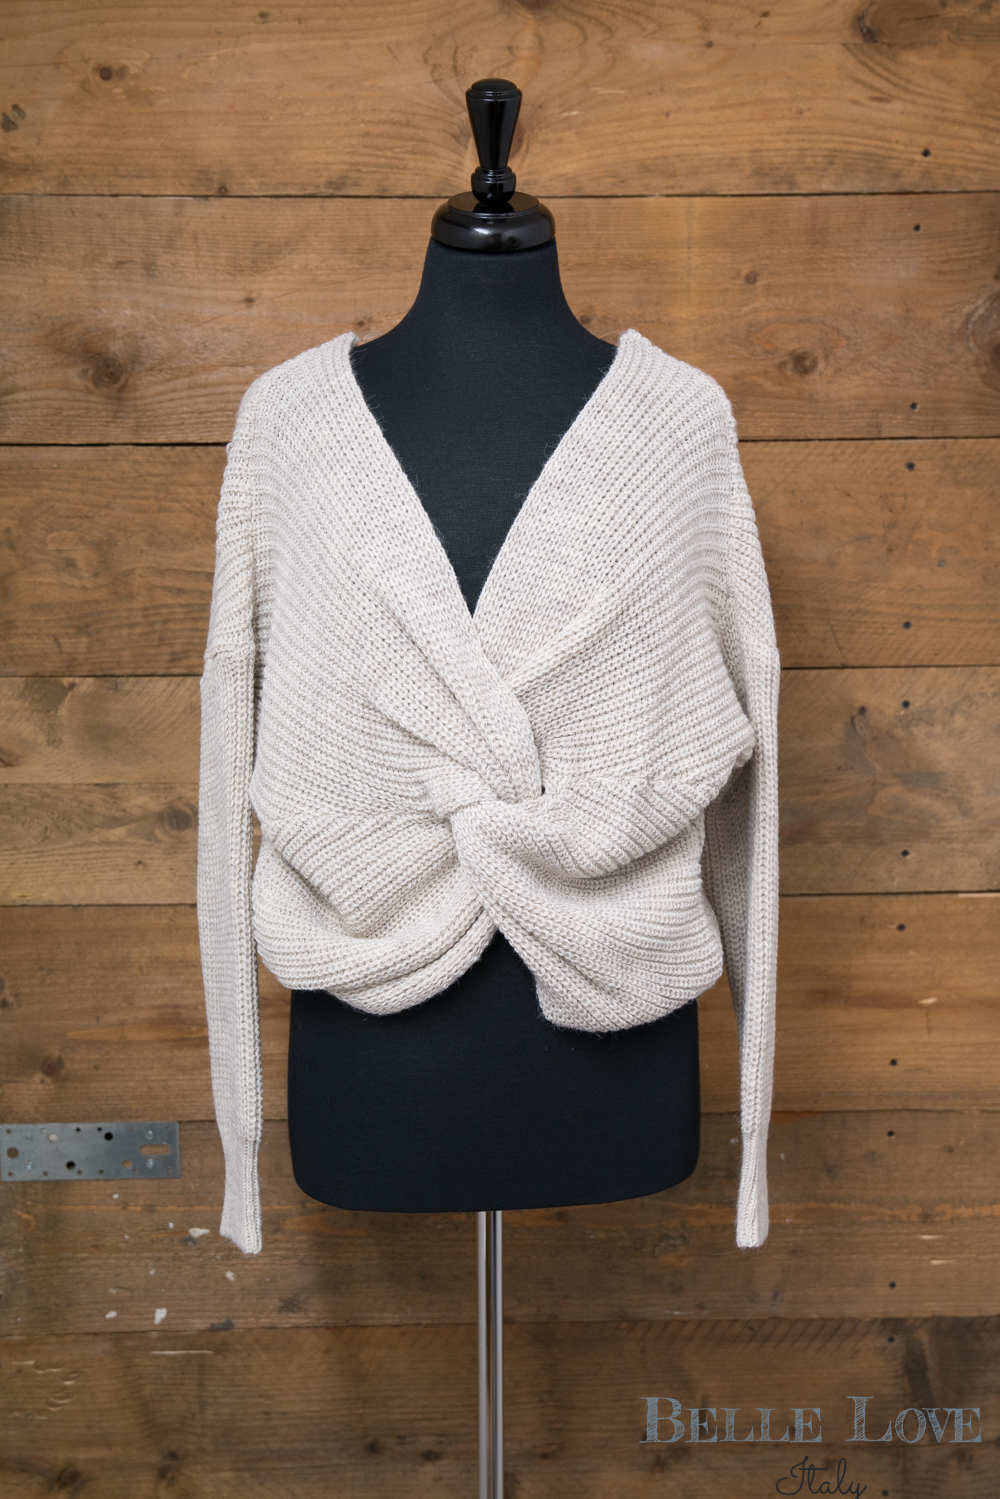 Belle Love Italy Over Cross Chunky Knit Jumper